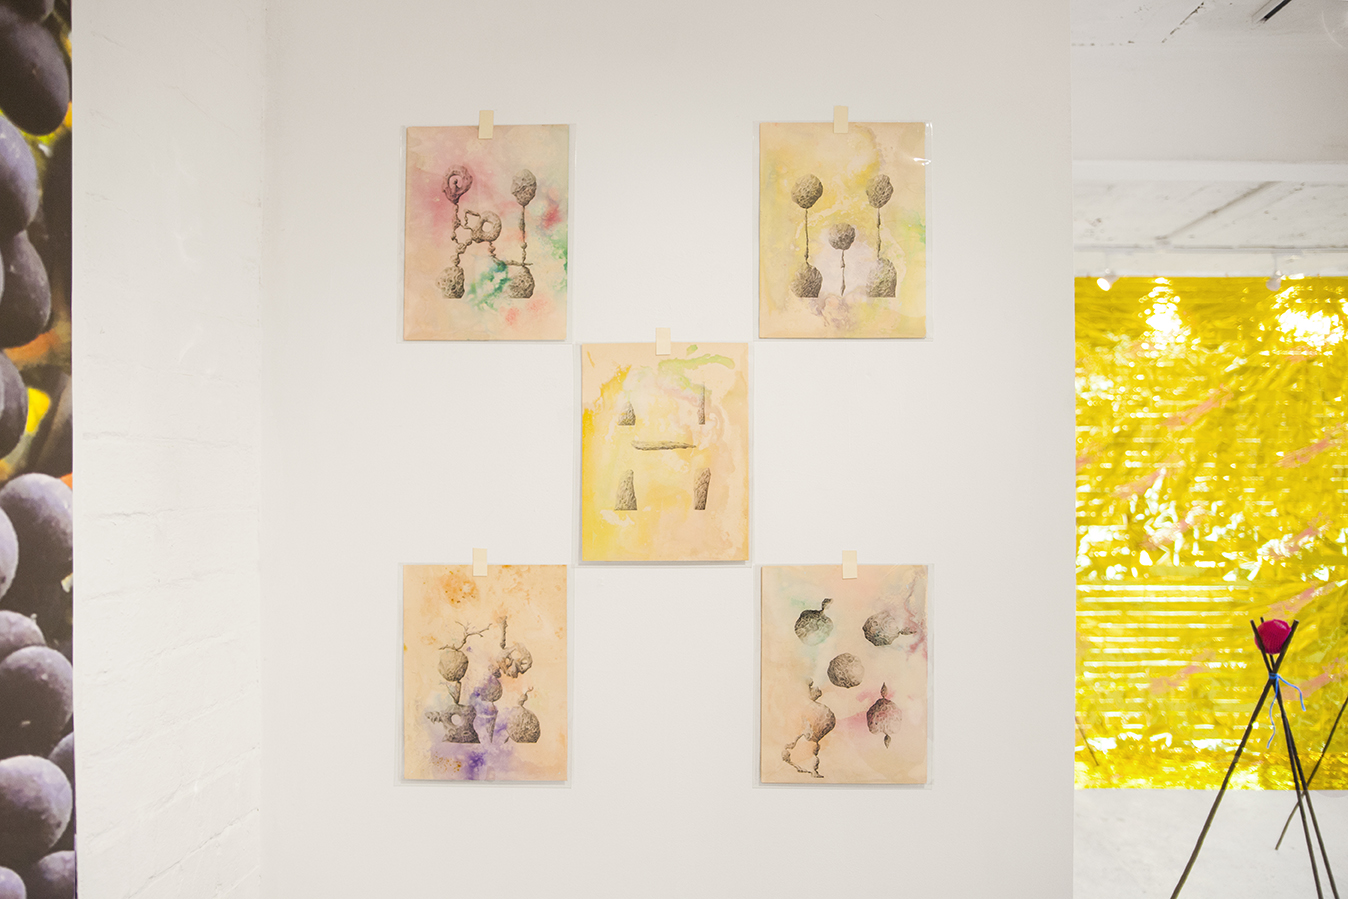 Quincunx Drawings I, II, III, IV & V — Pencil on paper dyed with sugar soap, sea salt, Fairy Liquid, water, teflon bicycle lubricant, clothes softener, ink, acrylic paint, wood glue and turmeric, 2018.